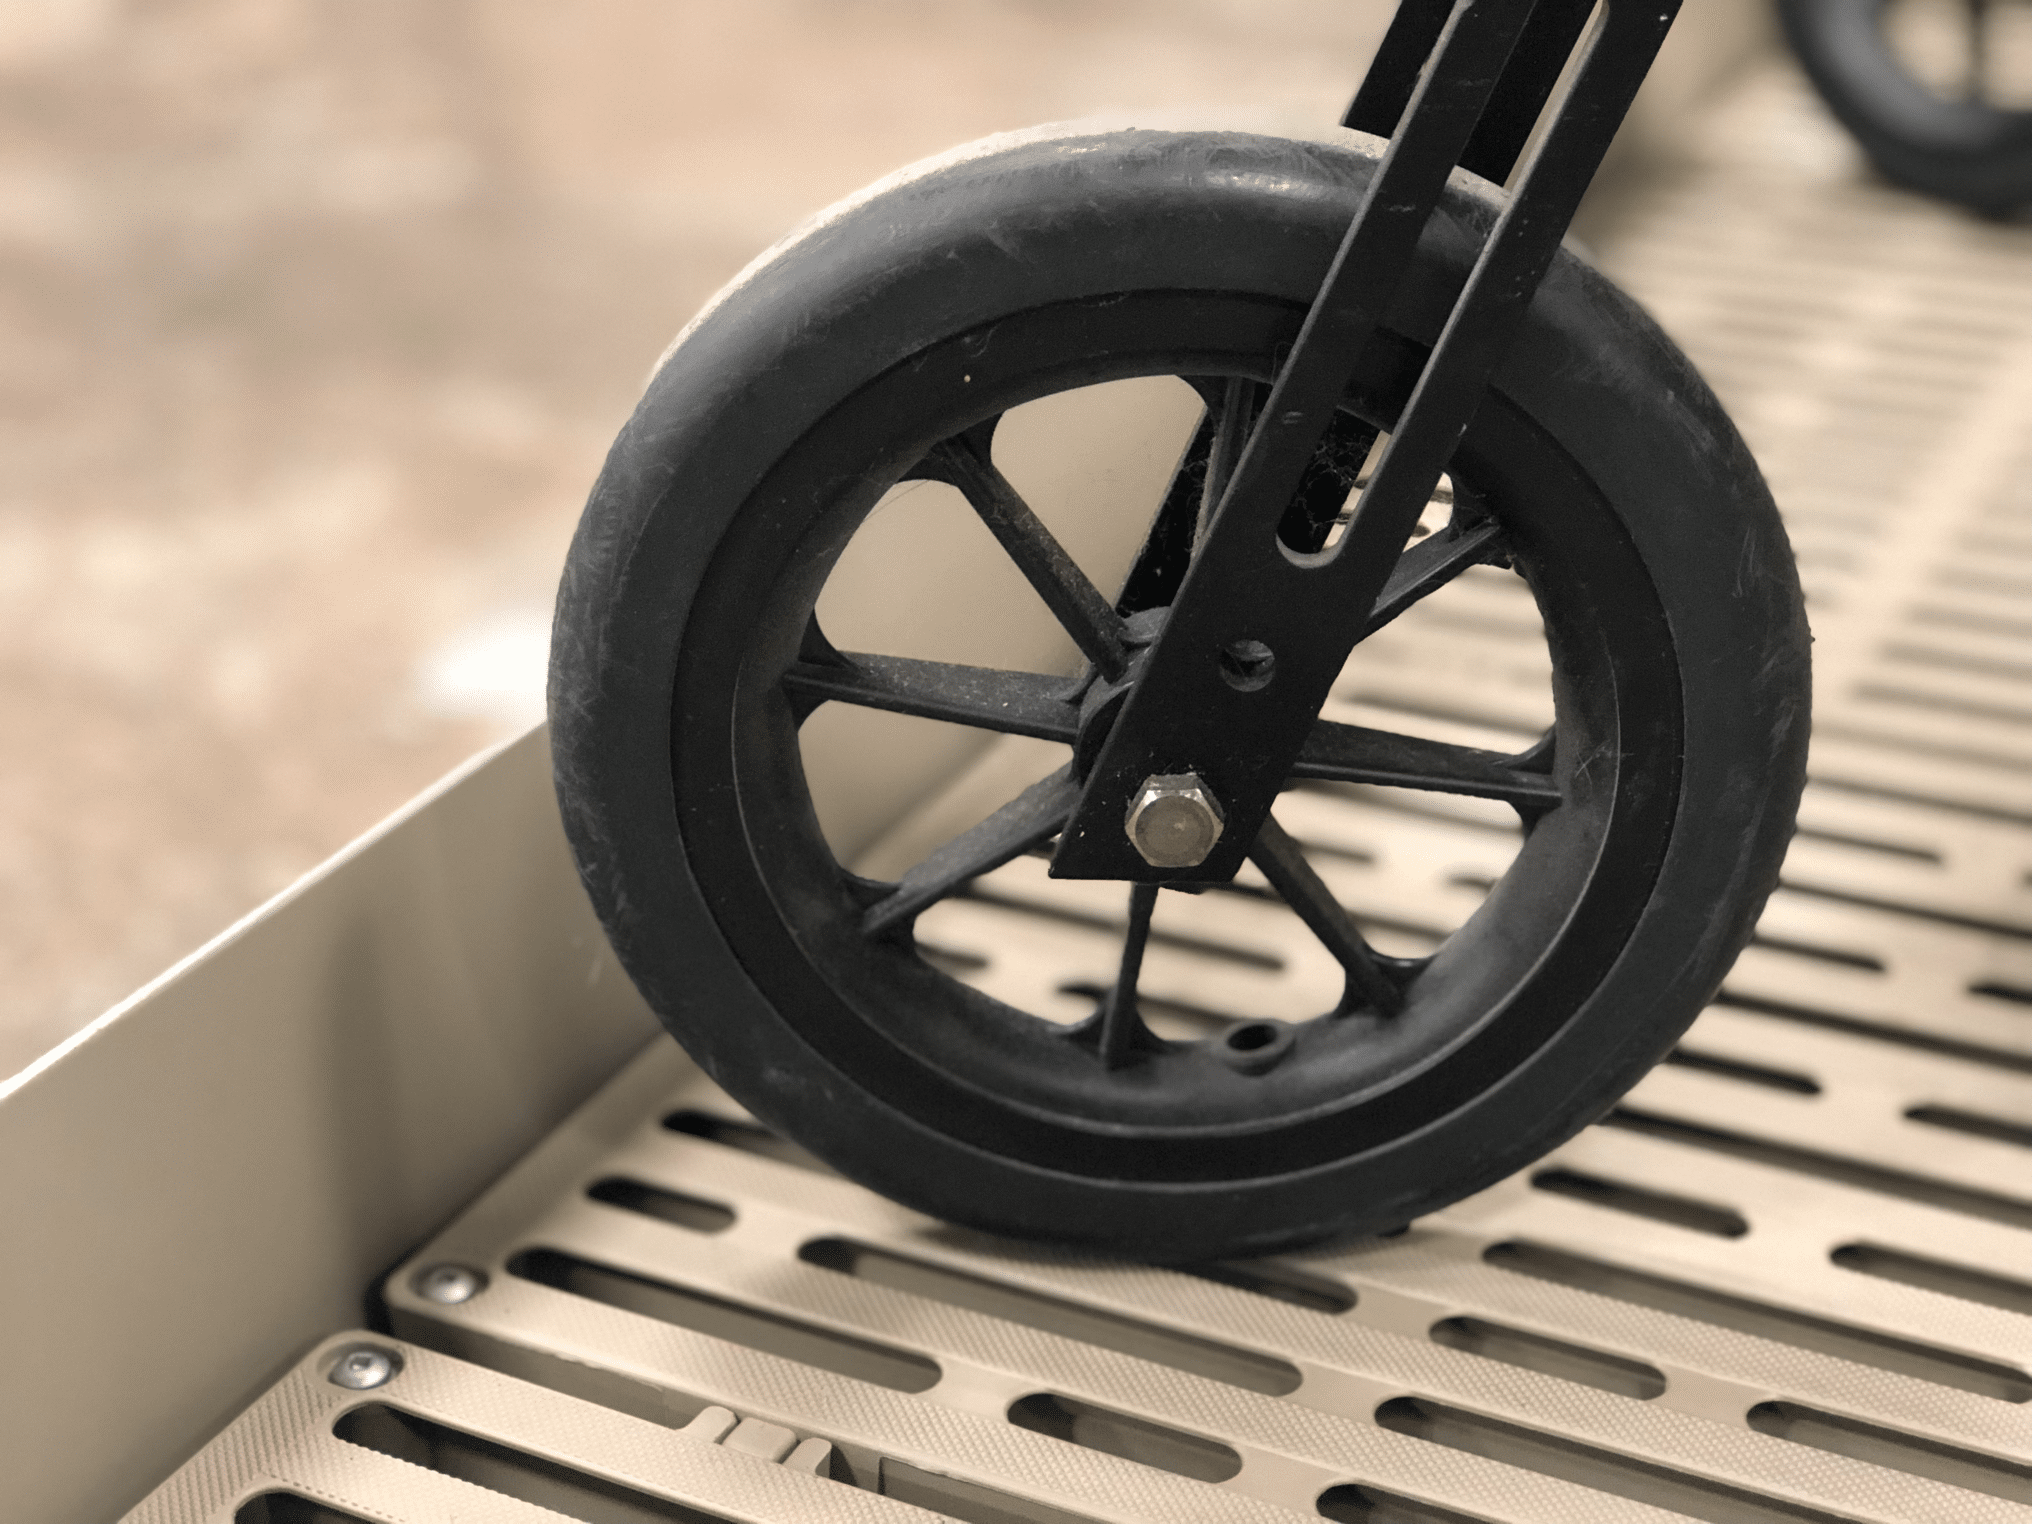 Knee Scooter on the ThruFlow™ non-slip surface